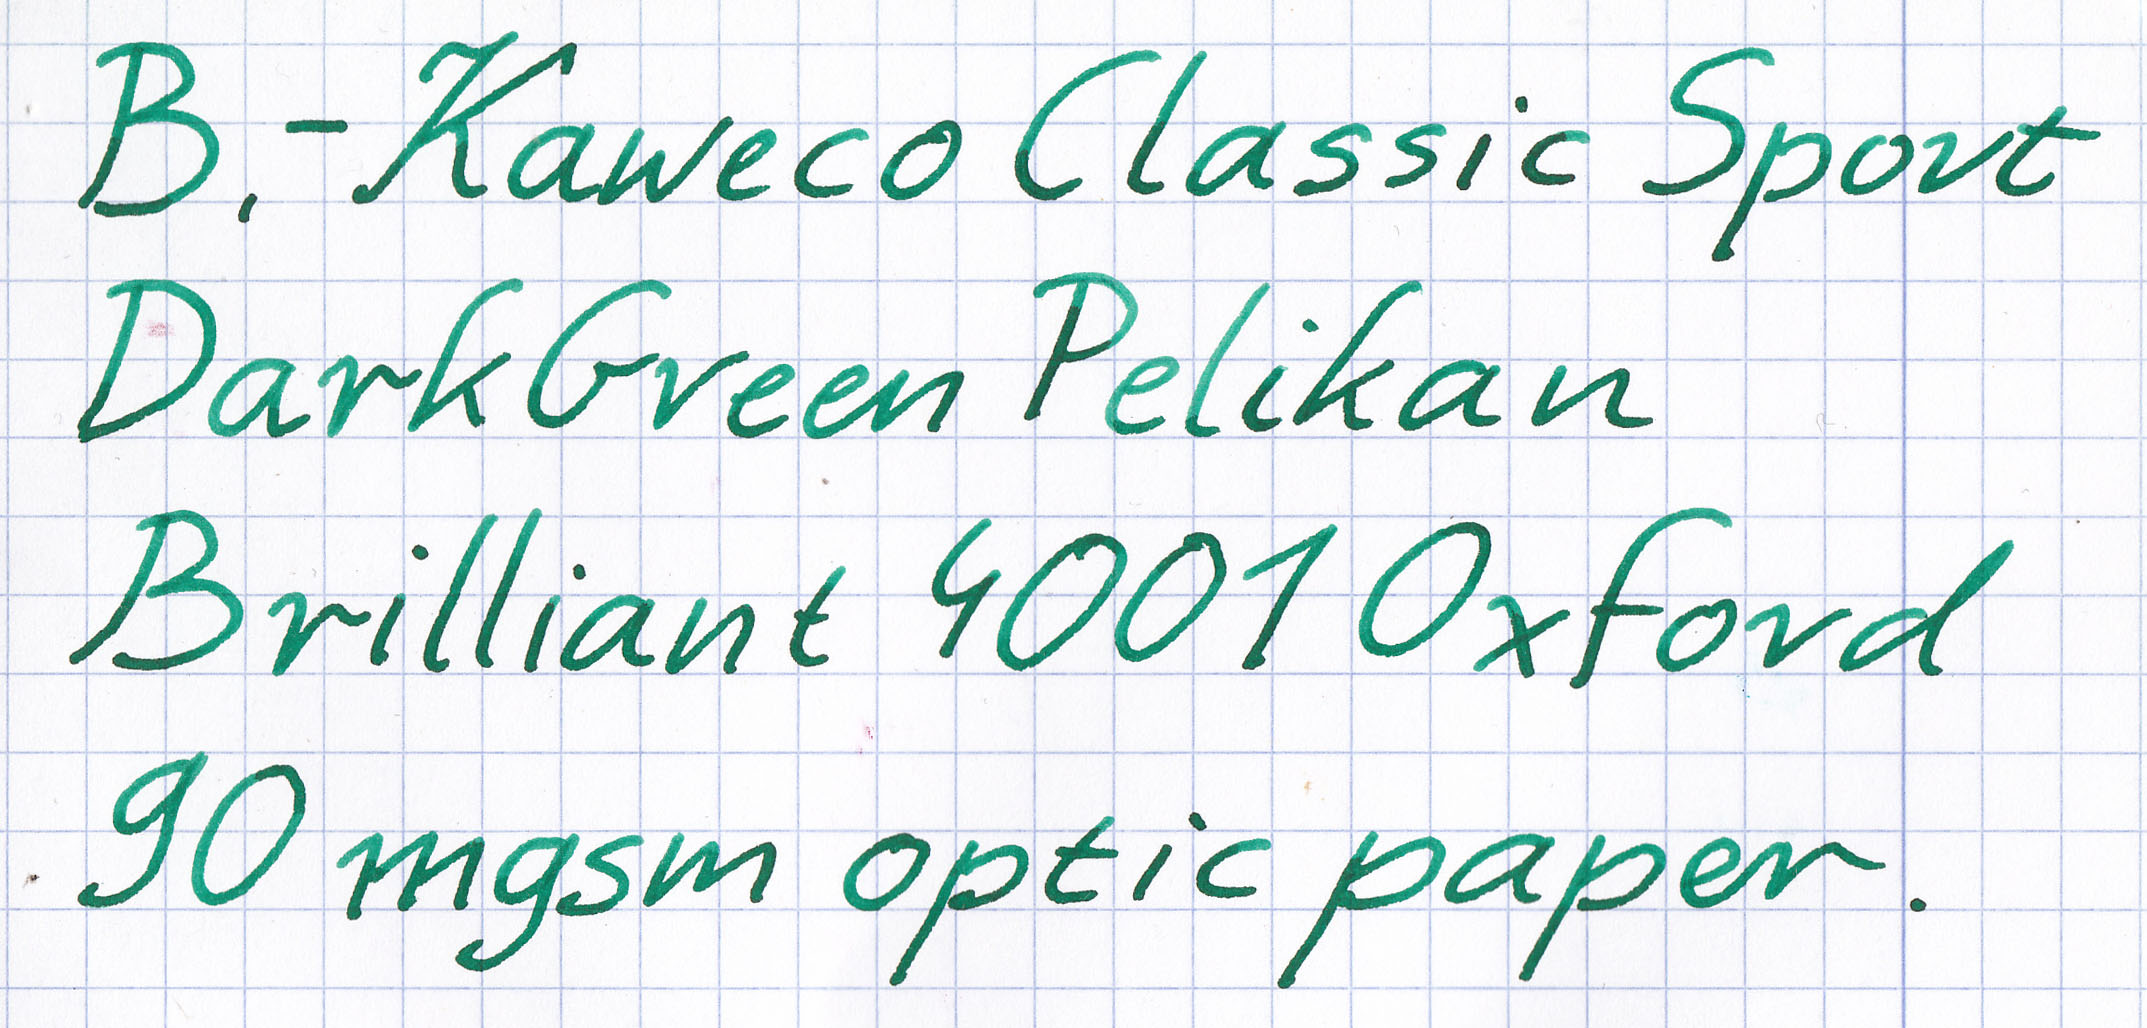 fpn_1455983958__darkgreen_pelikan_oxford